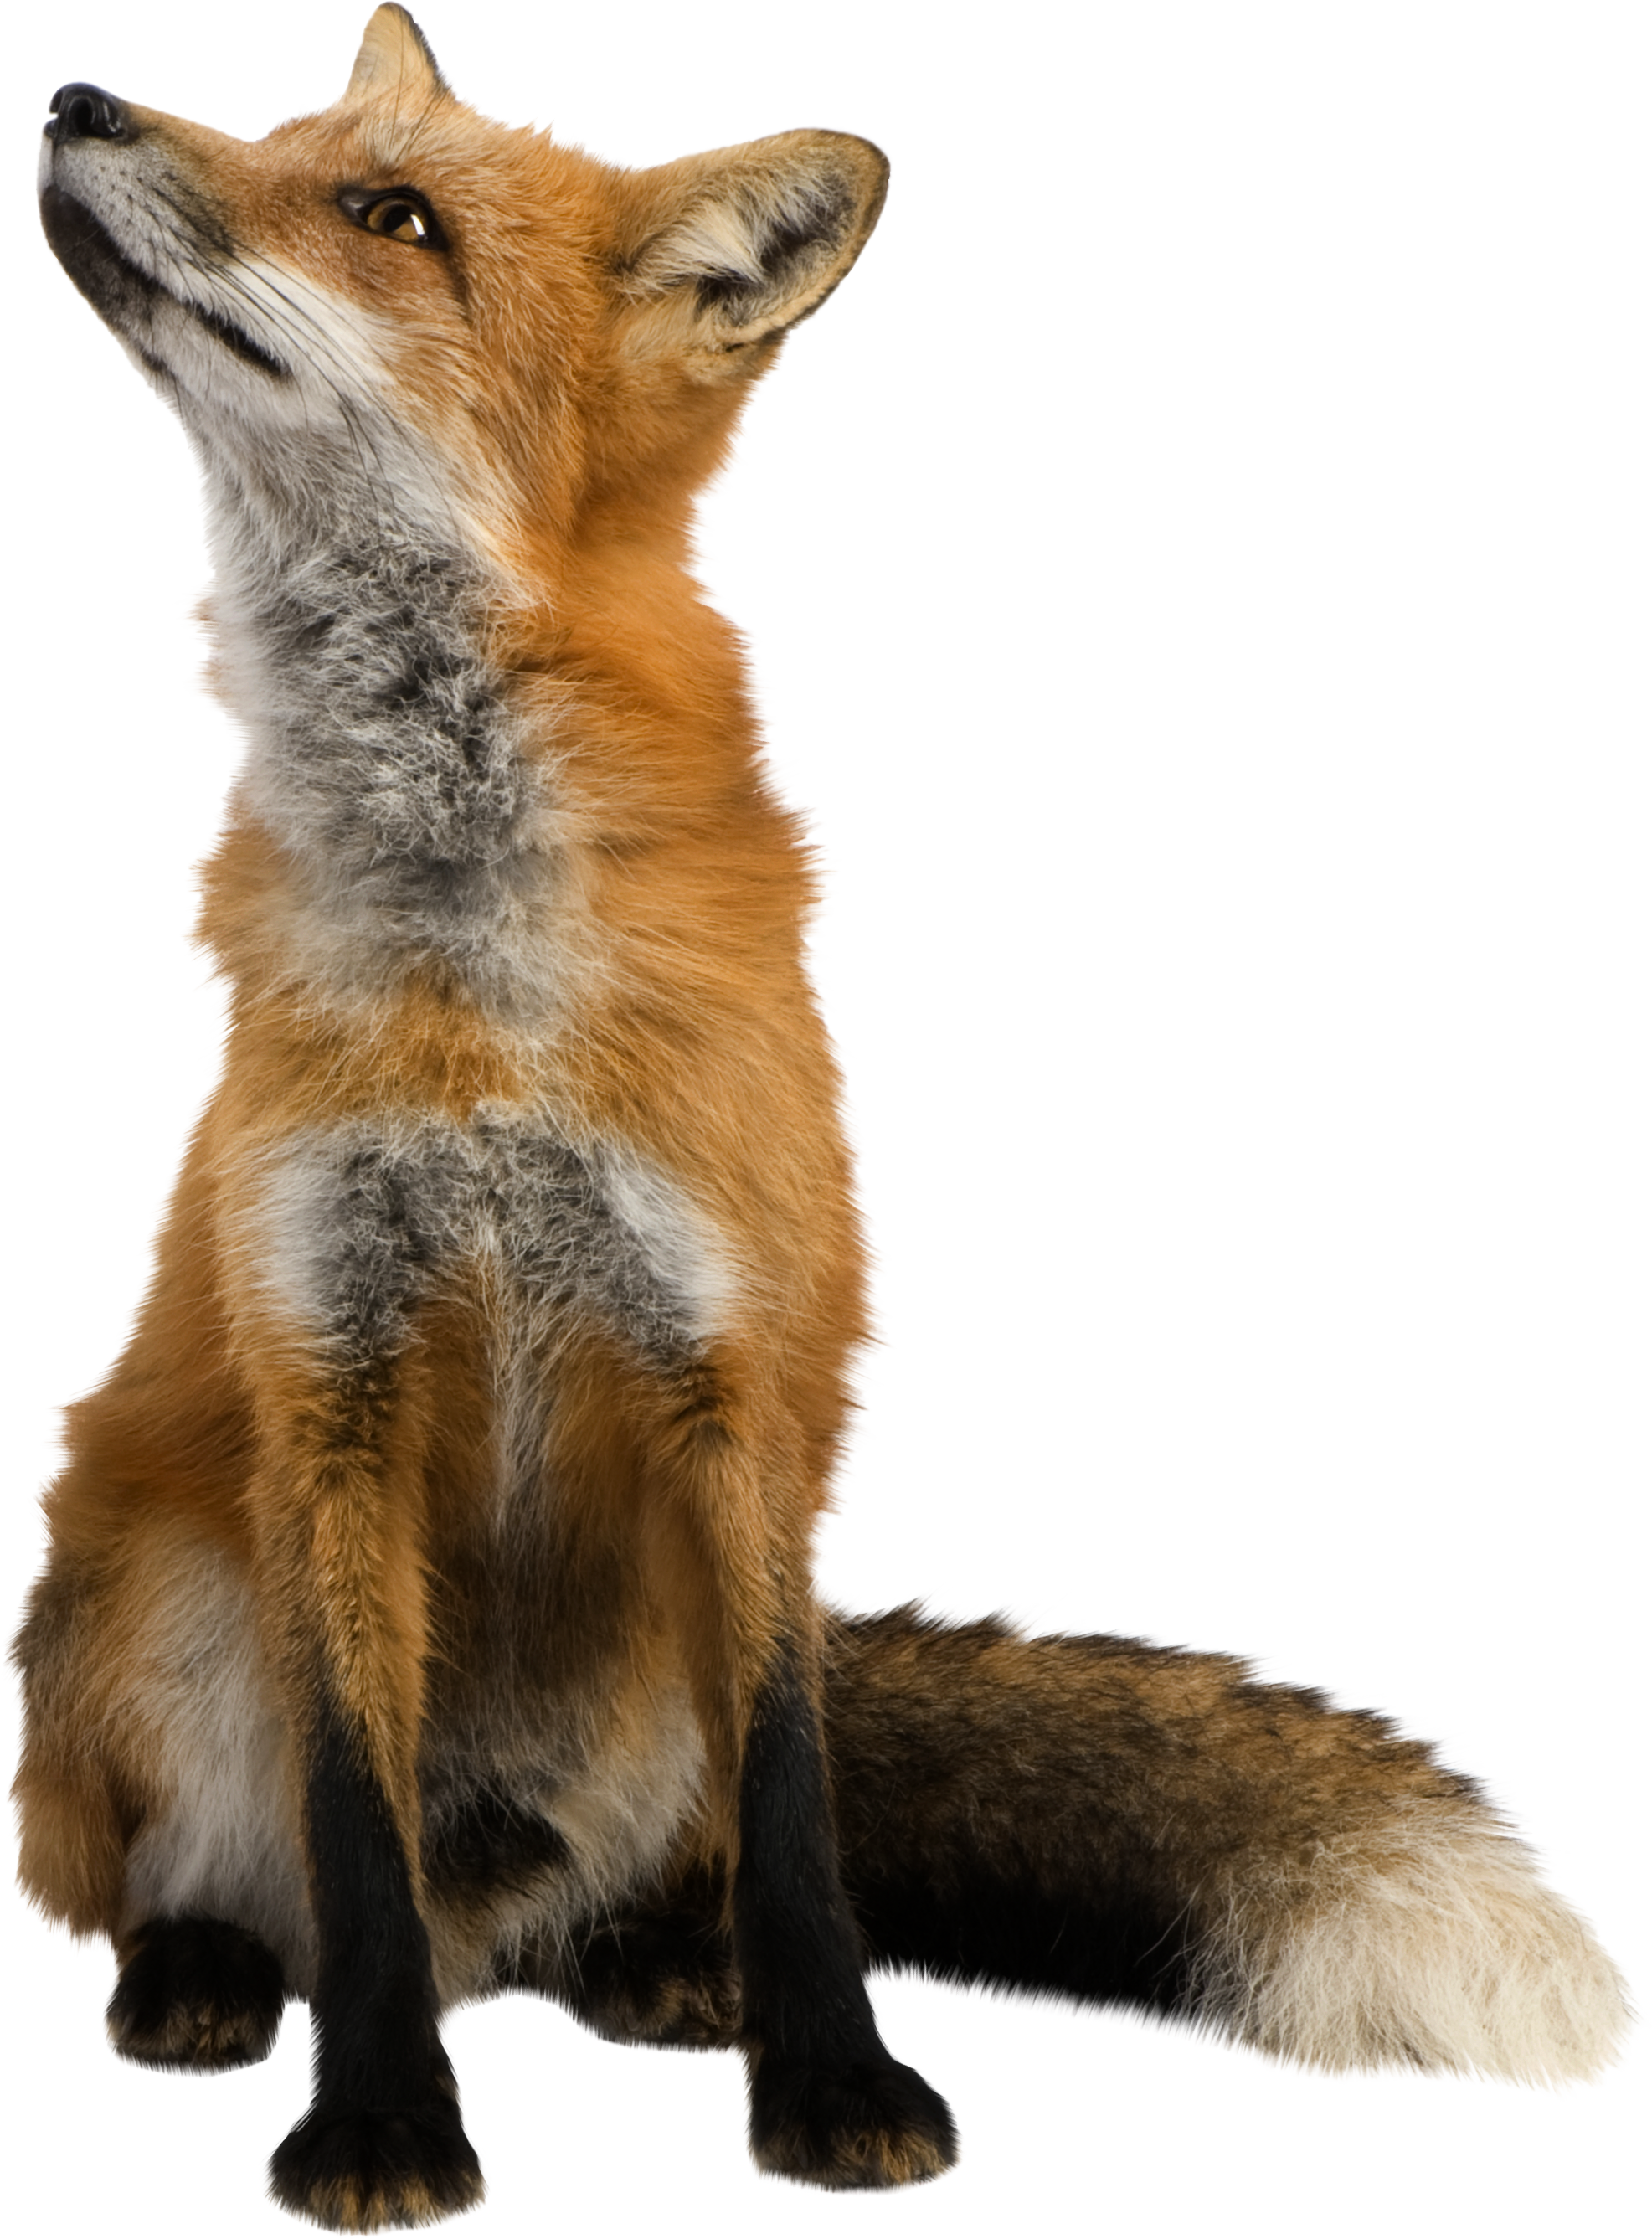 fox png image, free download picture - Fox PNG